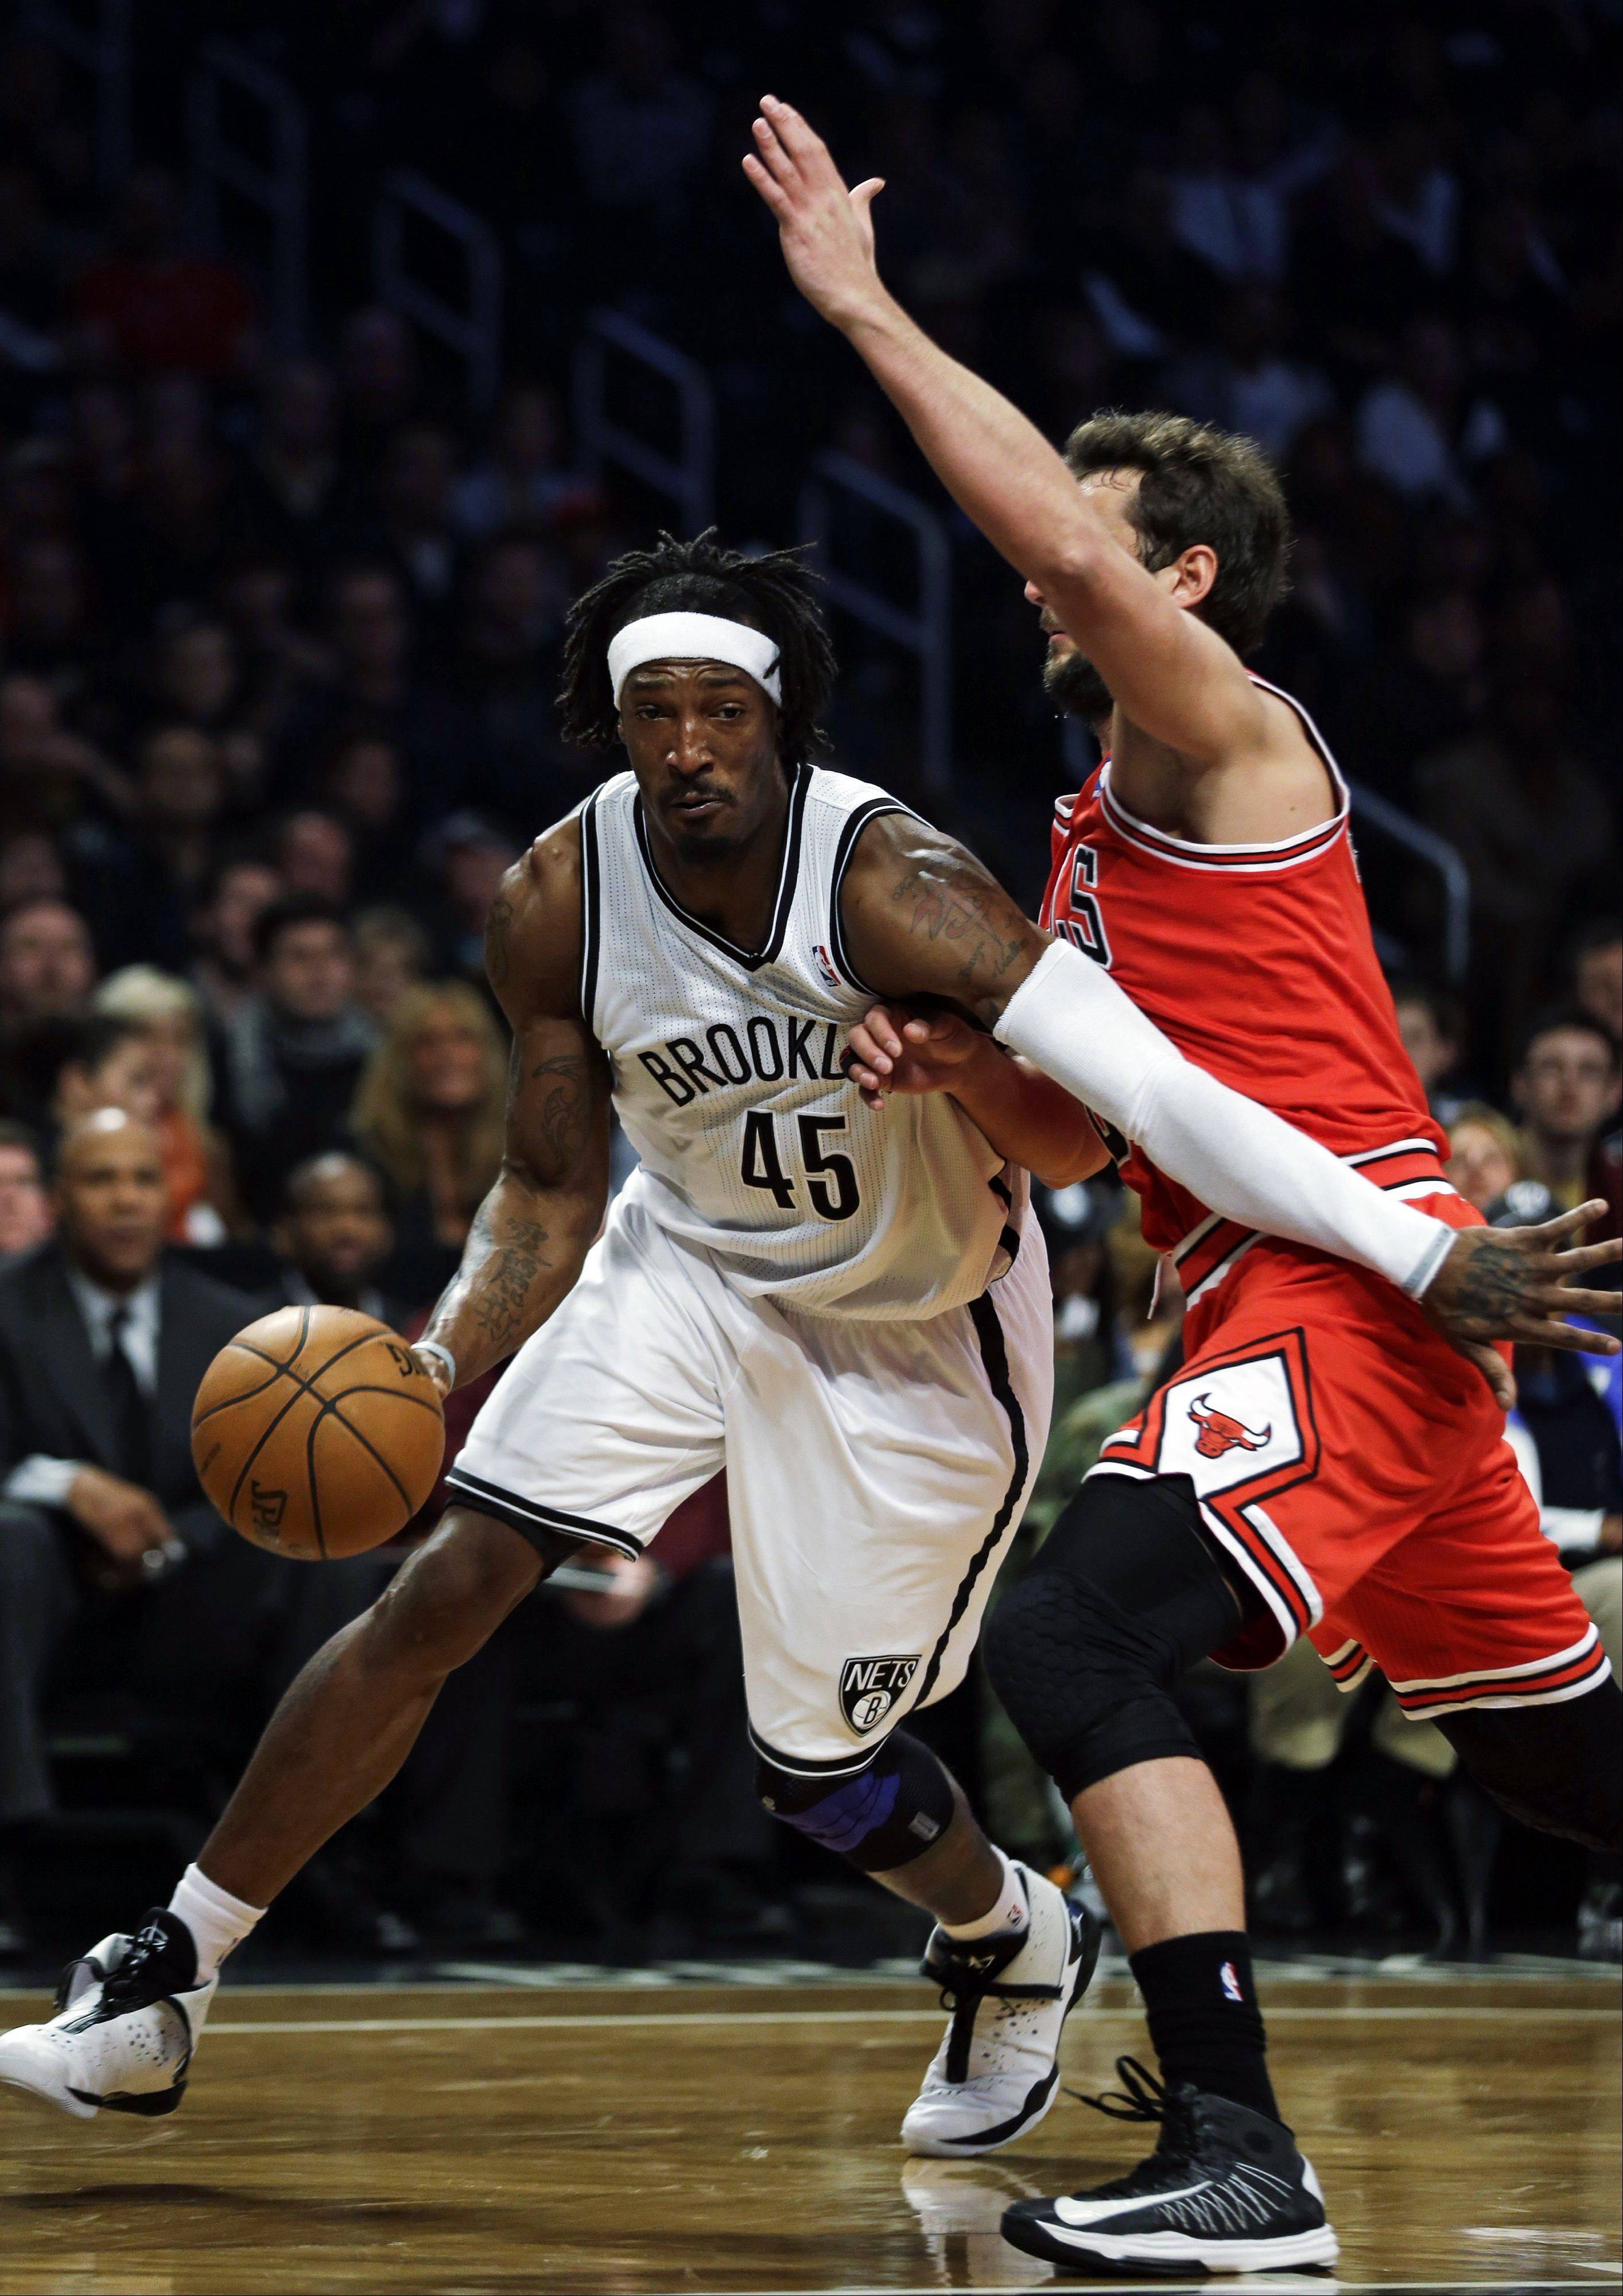 Brooklyn Nets forward Gerald Wallace, left, drives against Chicago Bulls guard Marco Belinelli during the first half in Game 7 of their first-round NBA basketball playoff series in New York, Saturday, May 4, 2013.